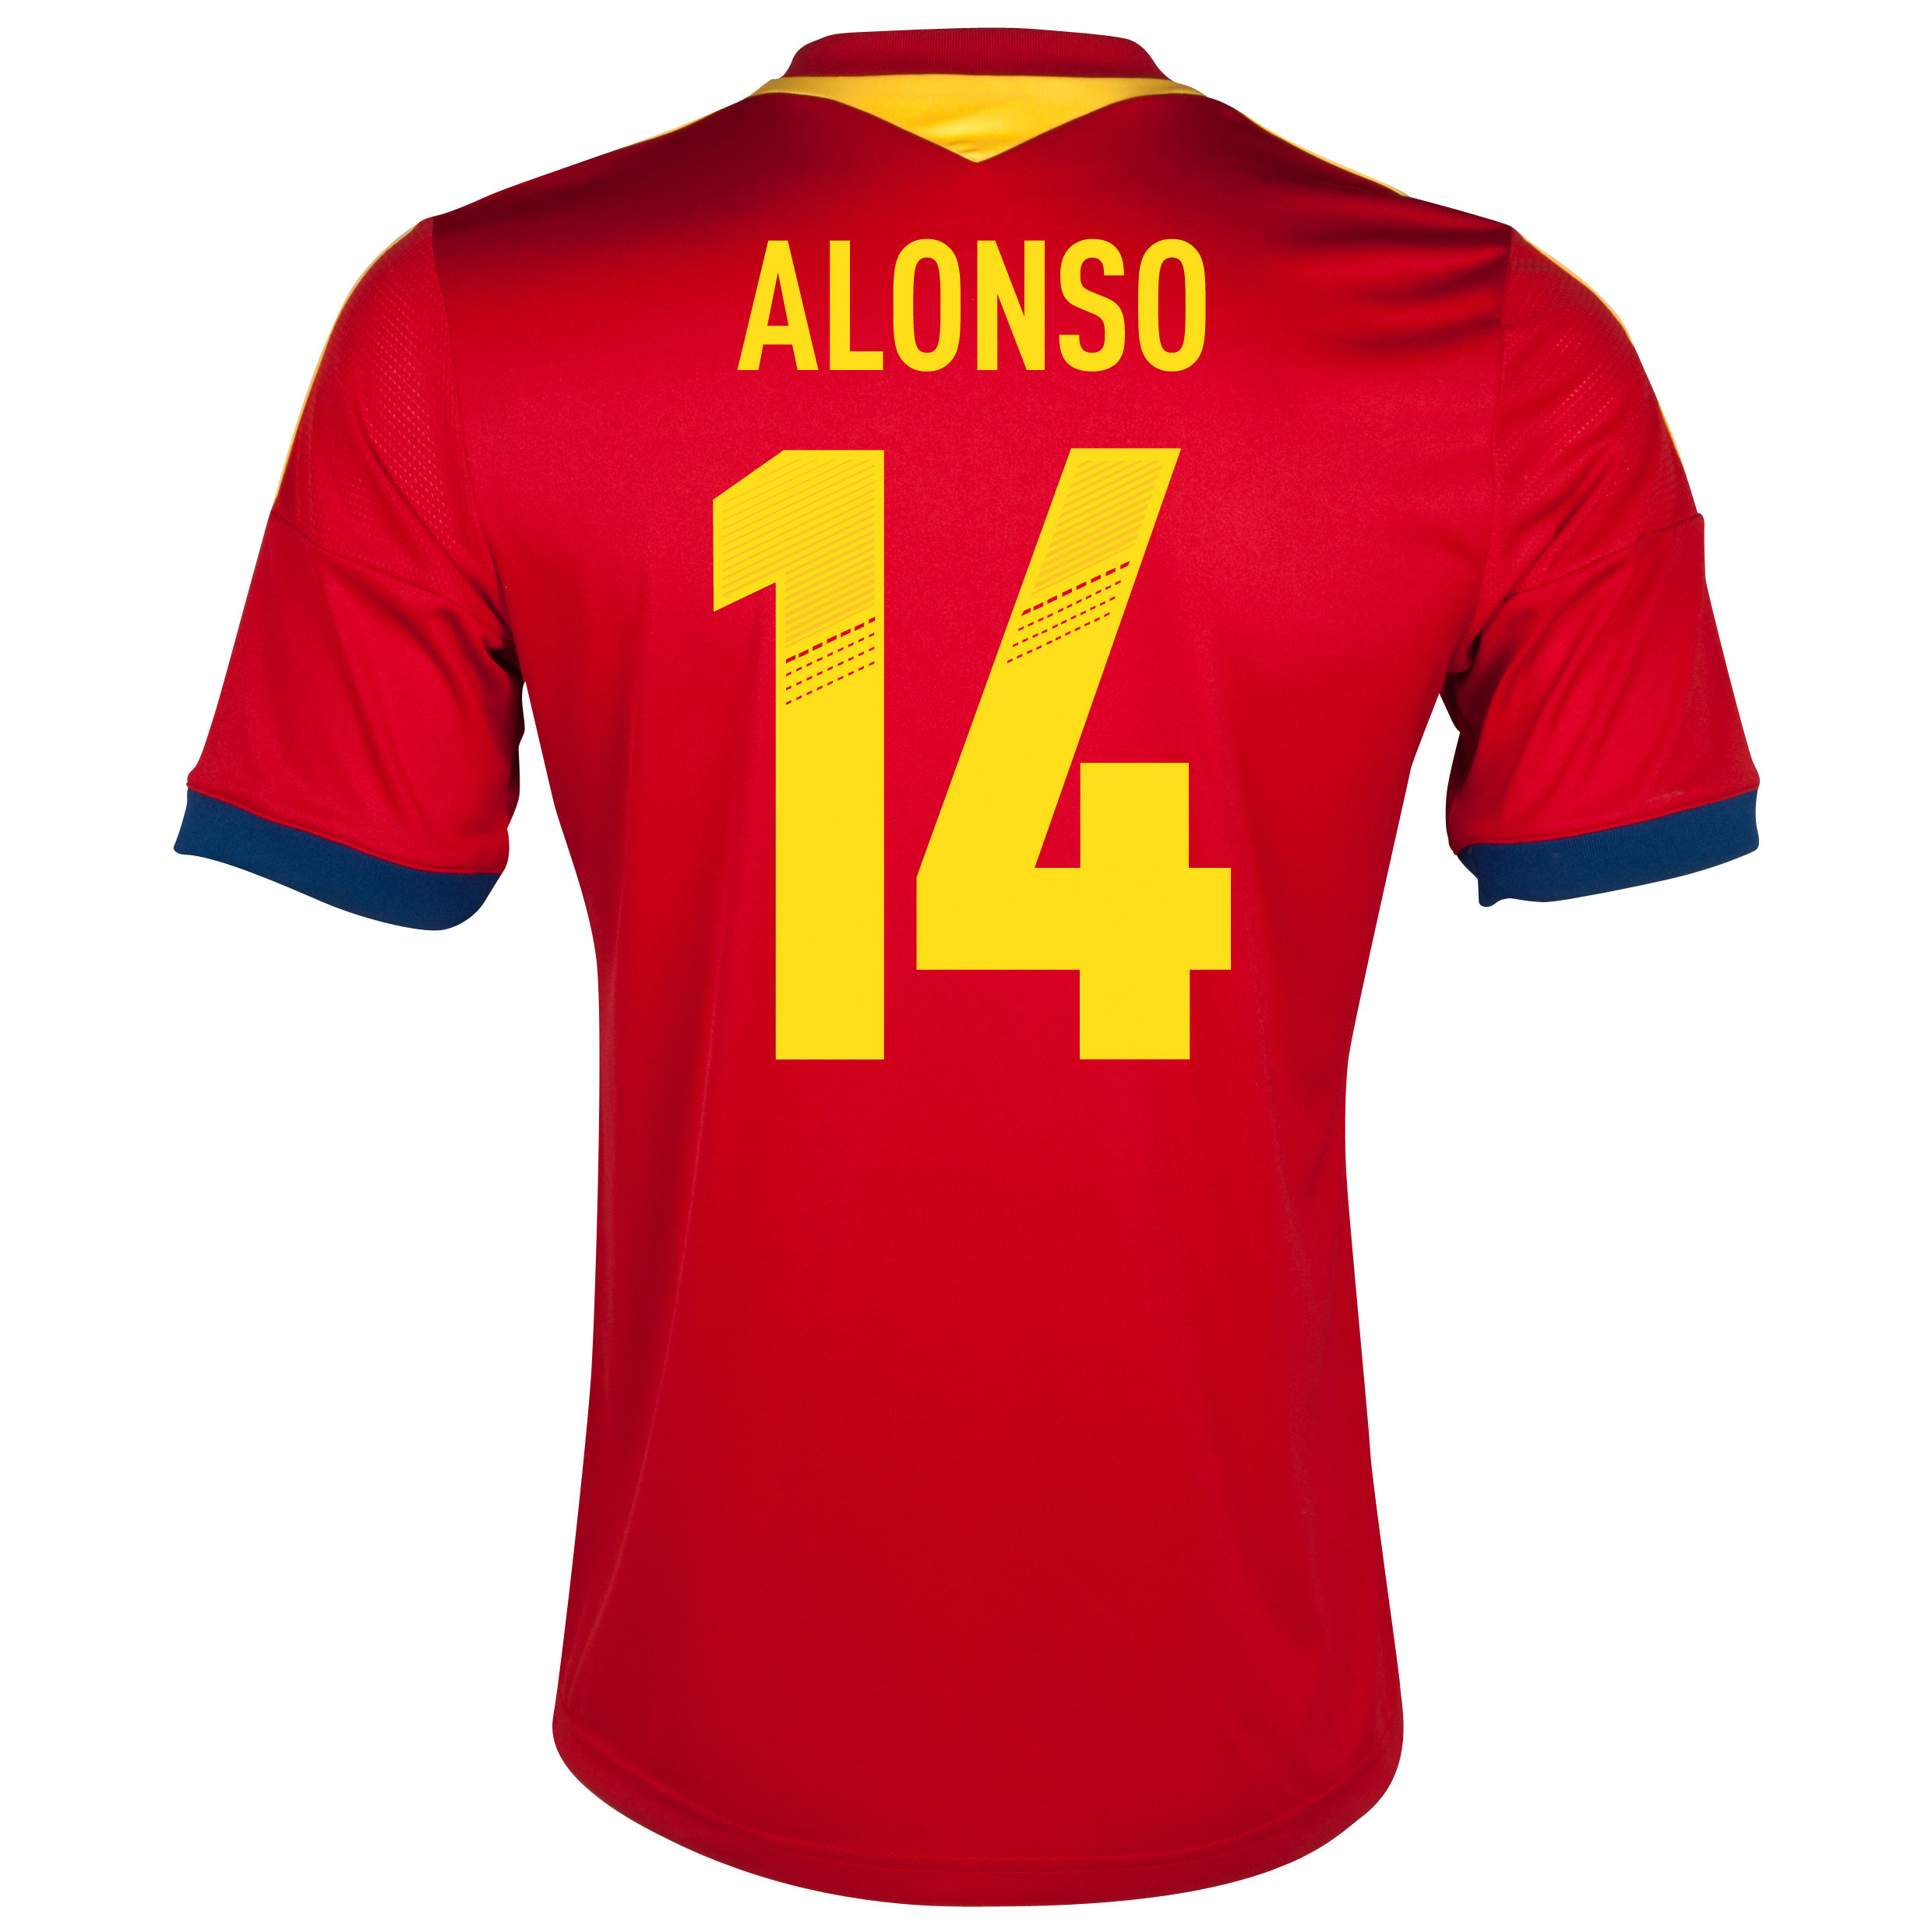 Spain Home Shirt 2013 with Alonso 14 printing